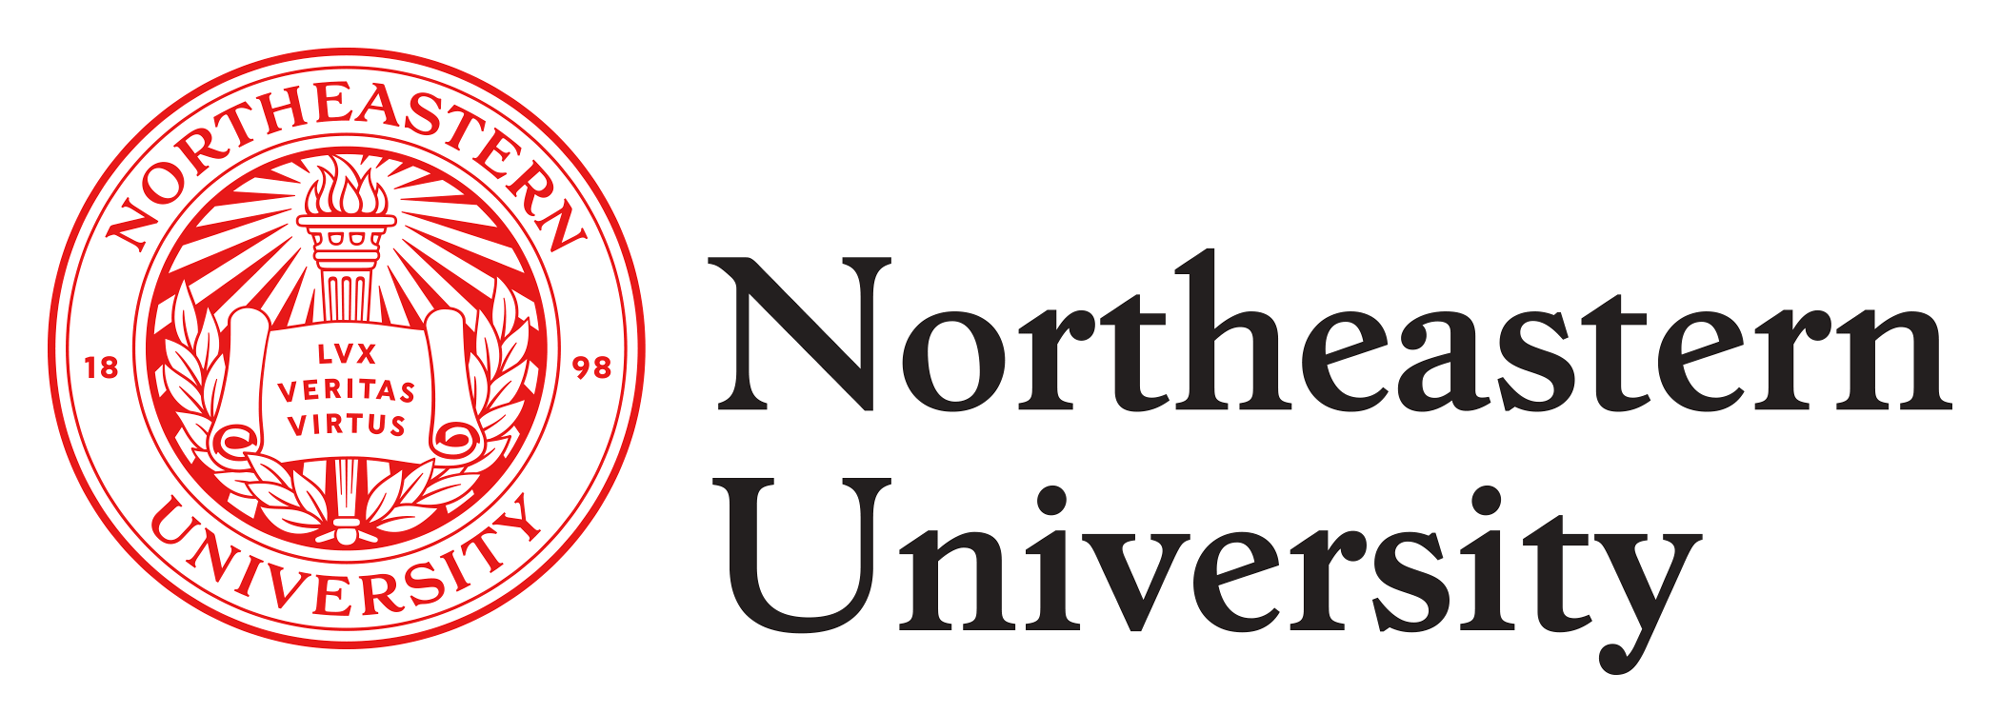 northeastern_university_logo